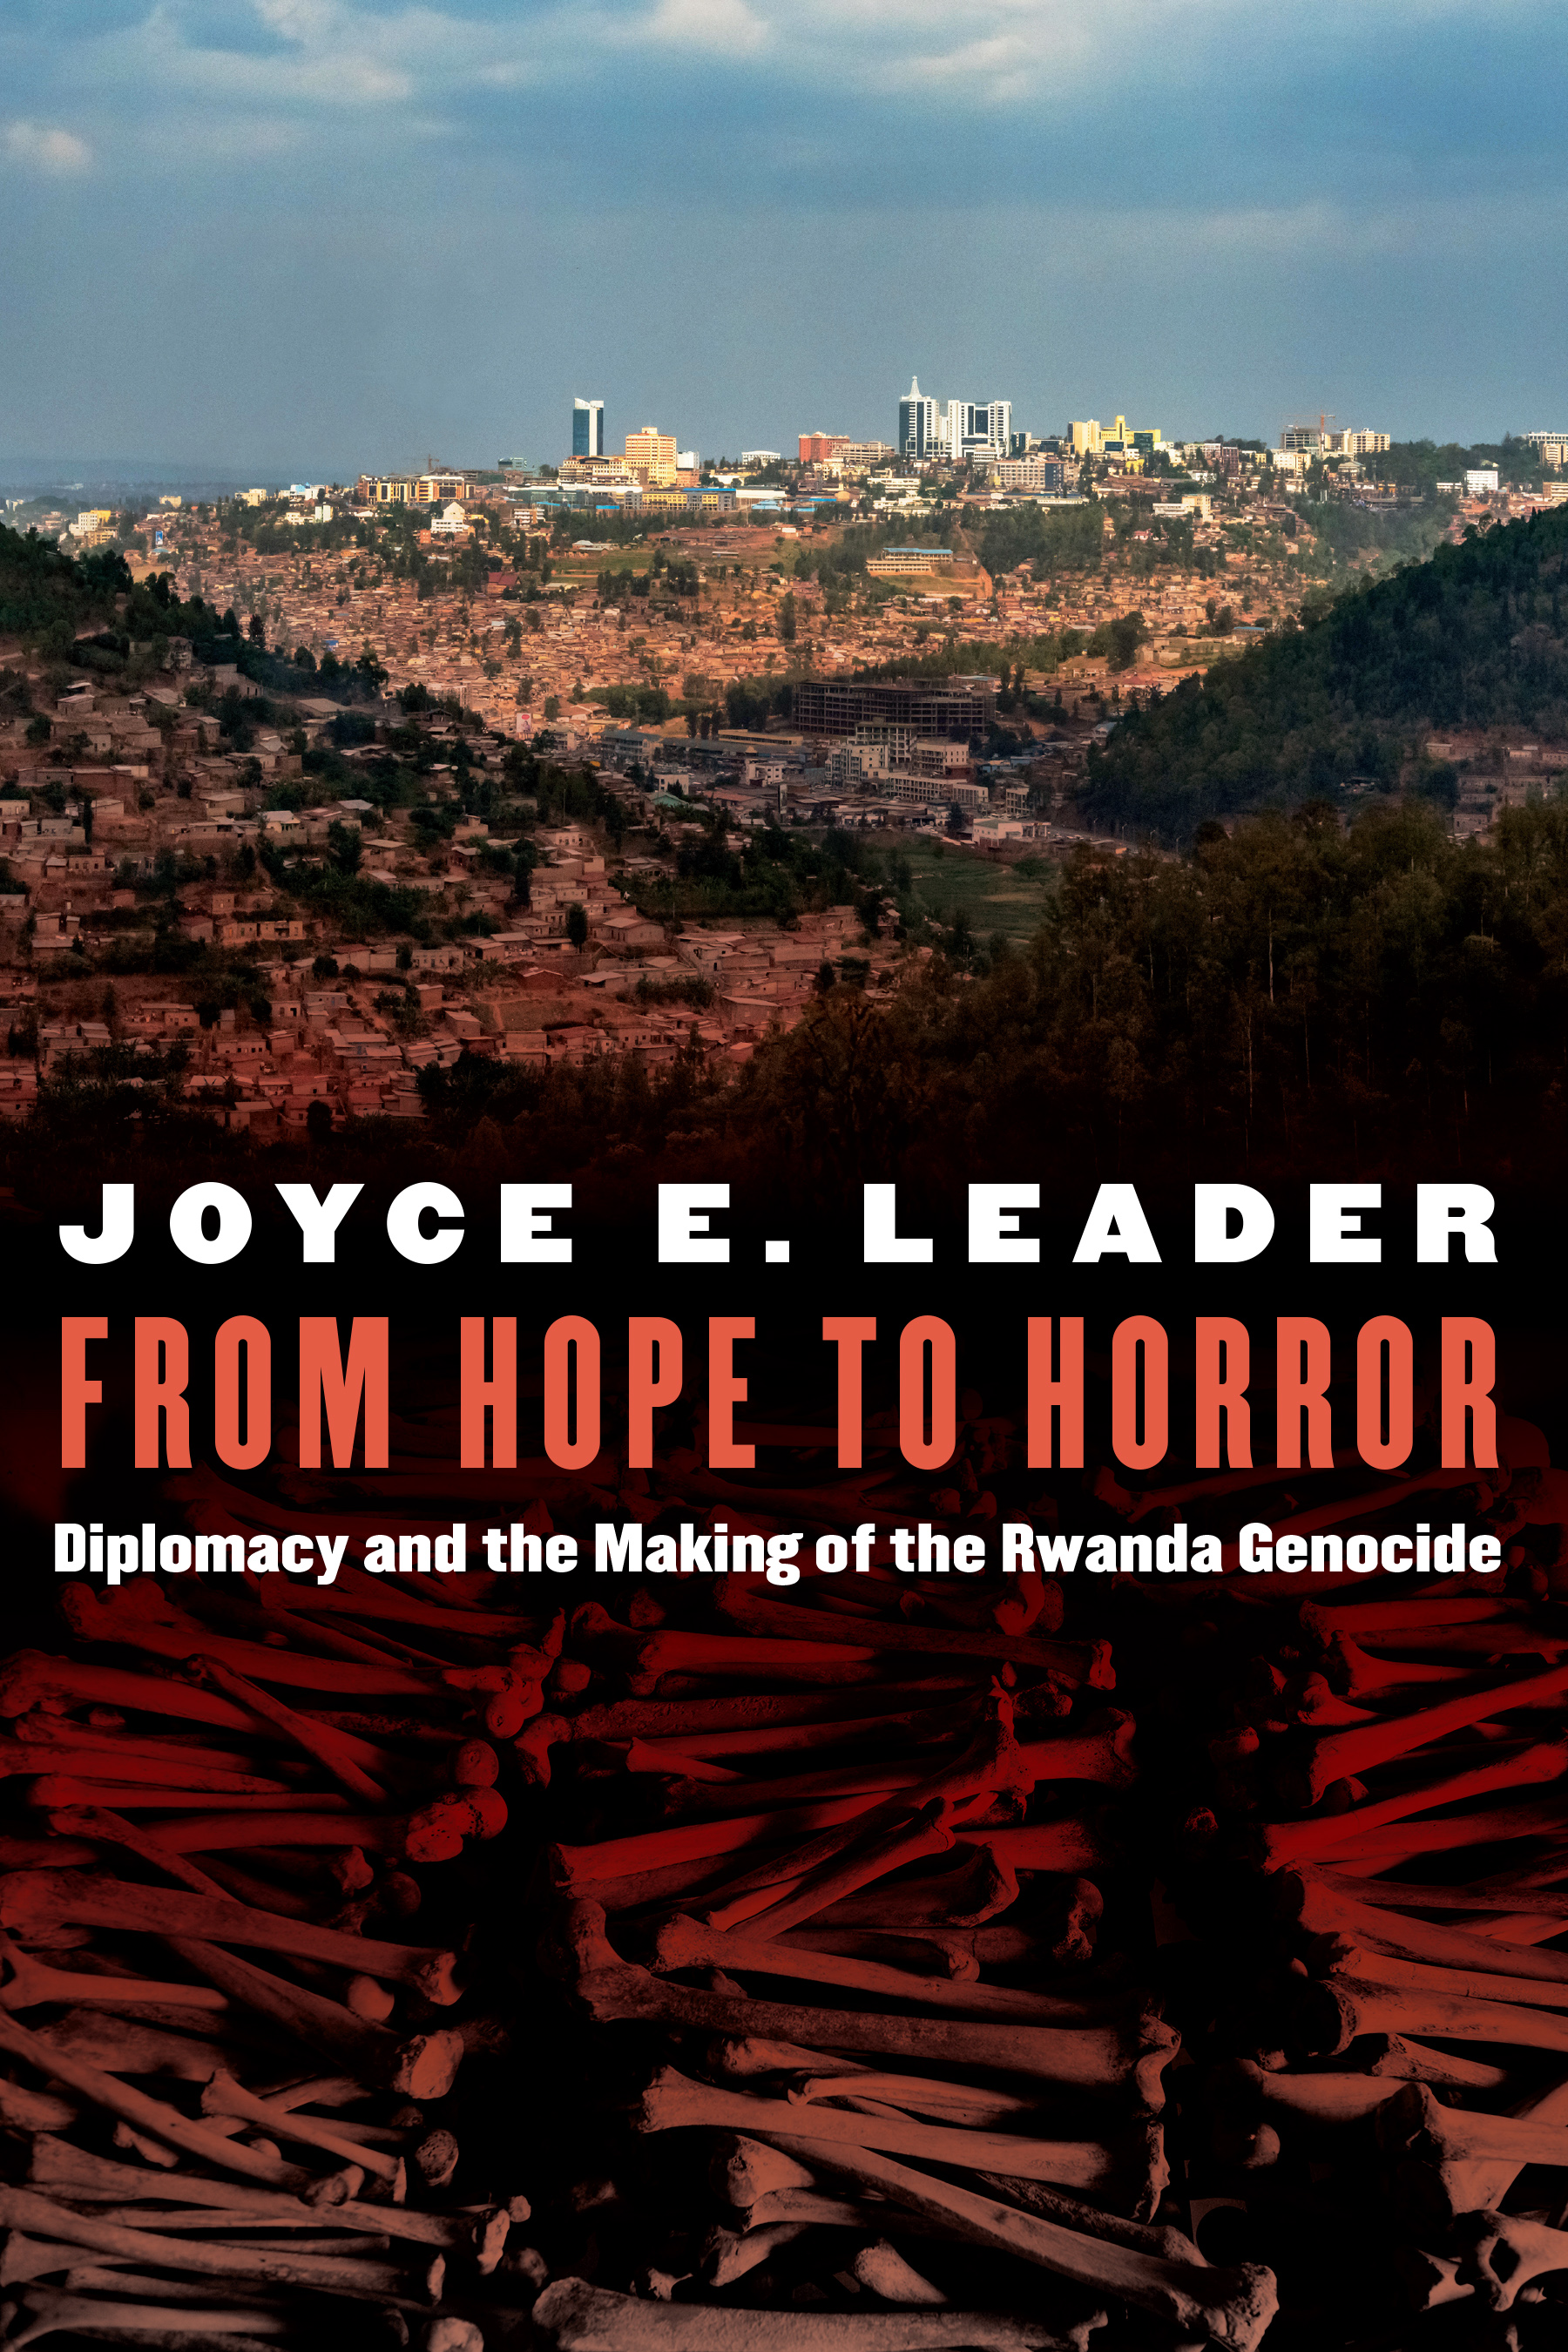 From Hope to Horror: Diplomacy and the Making of the Rwanda Genocide